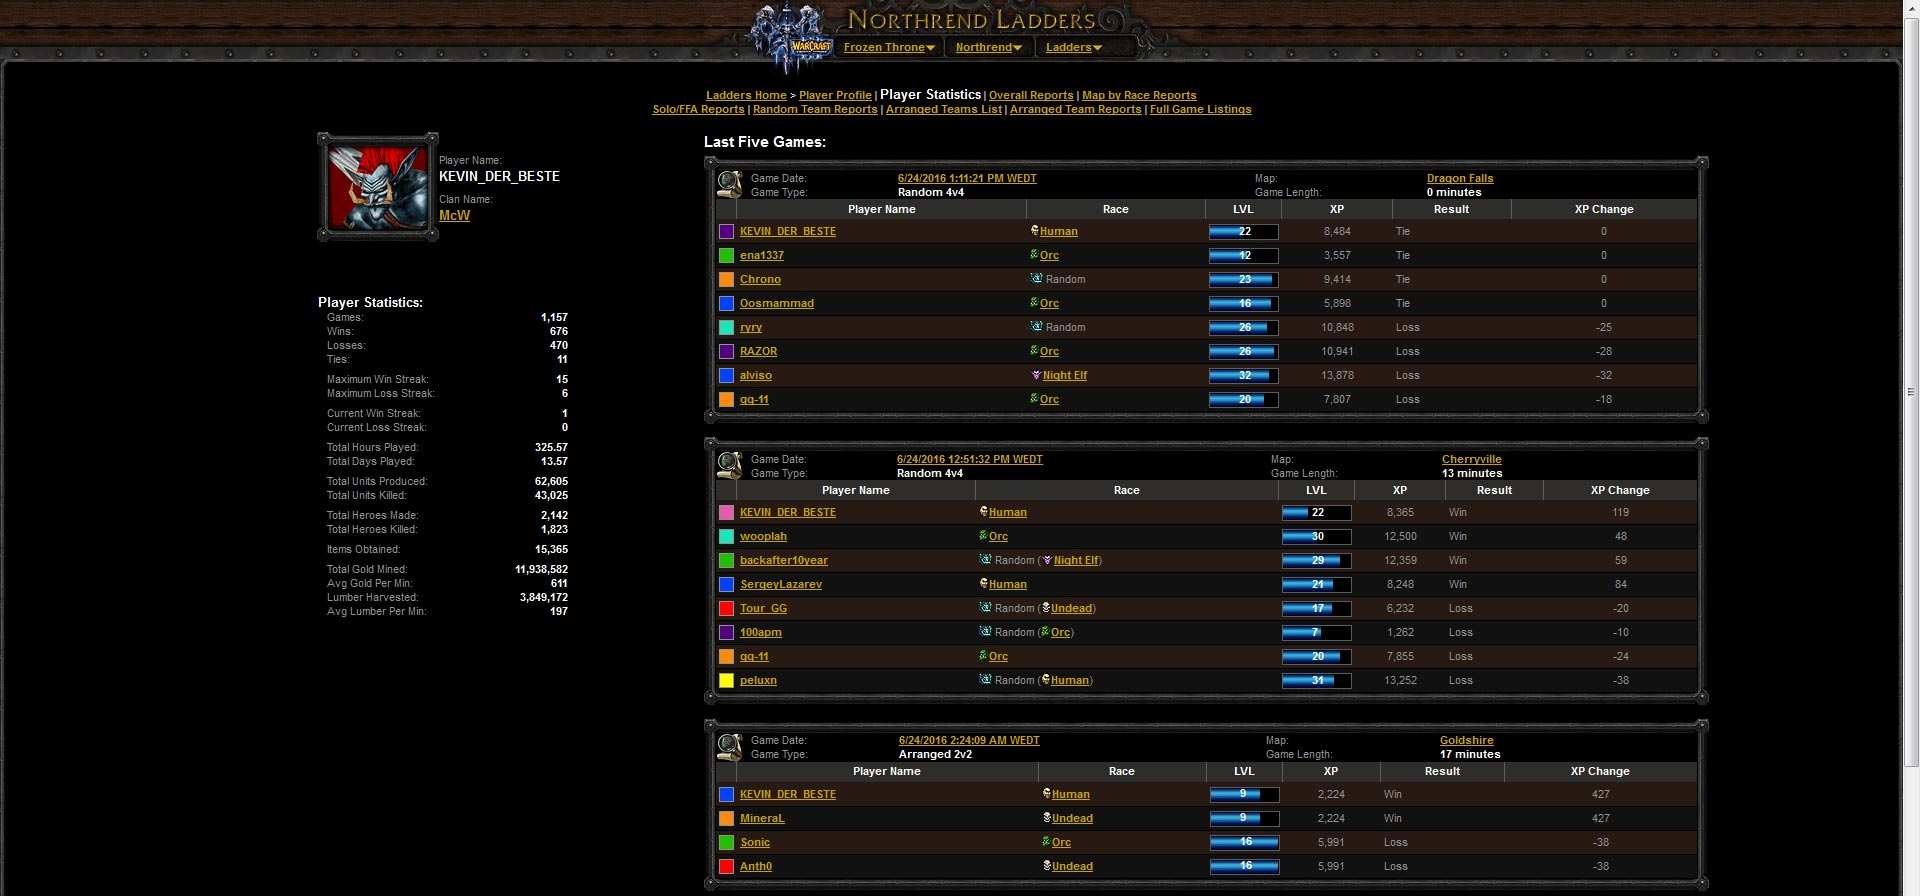 battle-net-wc3-website-profile-statistics